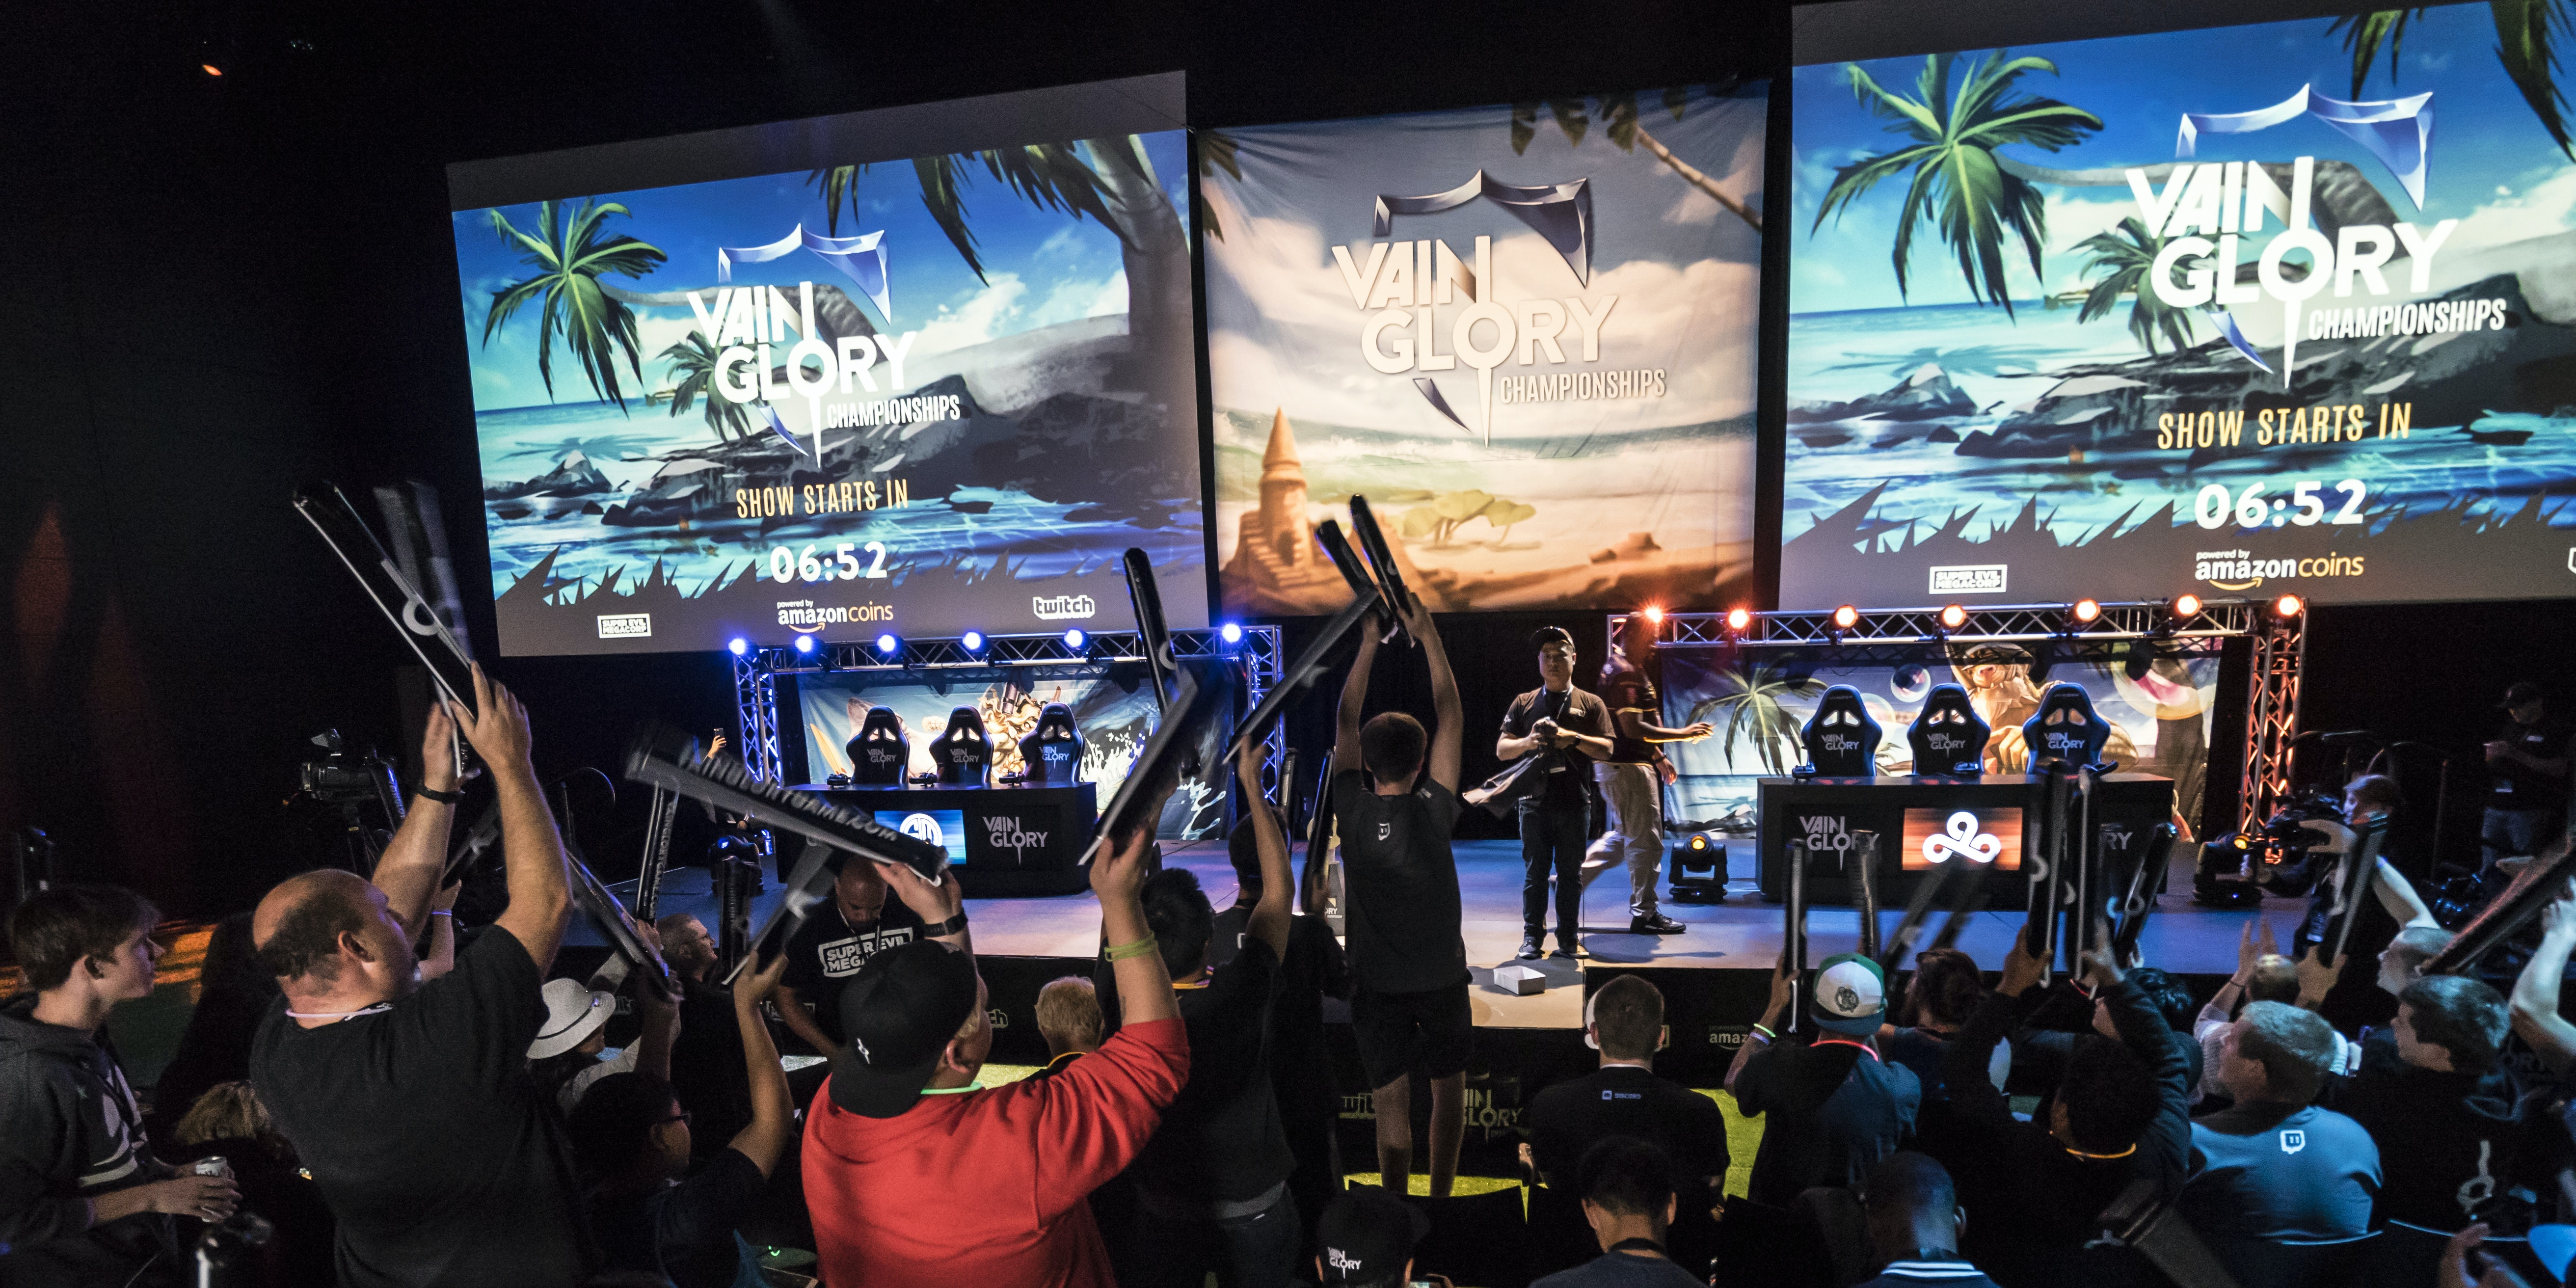 'Vainglory' might not draw giant crowds, but the fans are just as passionate.